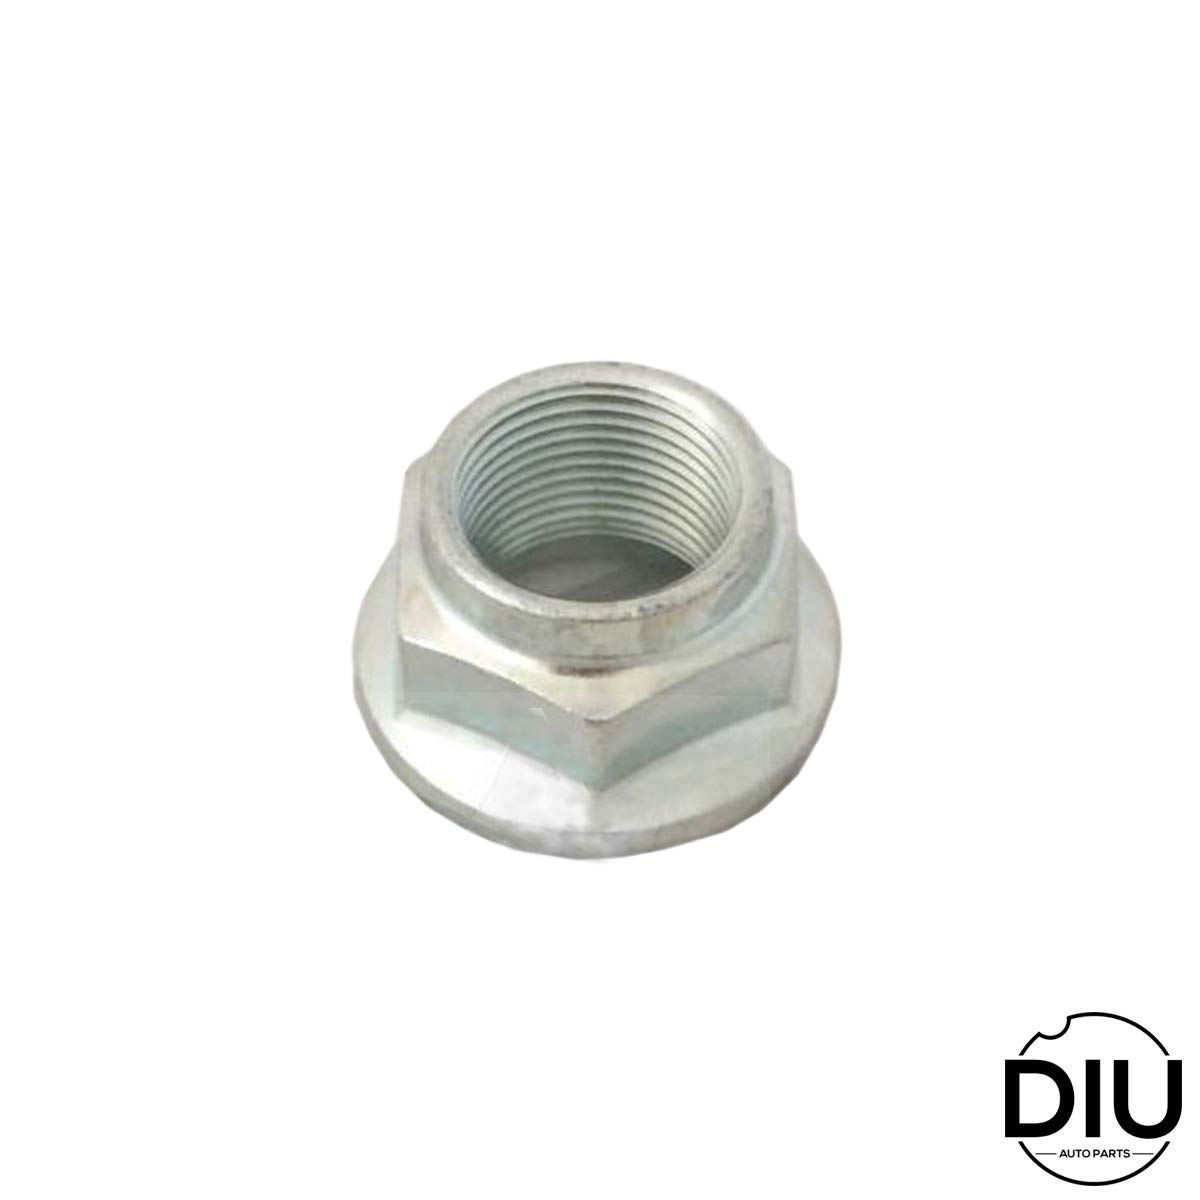 Samurai 1986-1995 Differential Pinion Nut For Front /& Rear Replacement Part No 27375-60A00